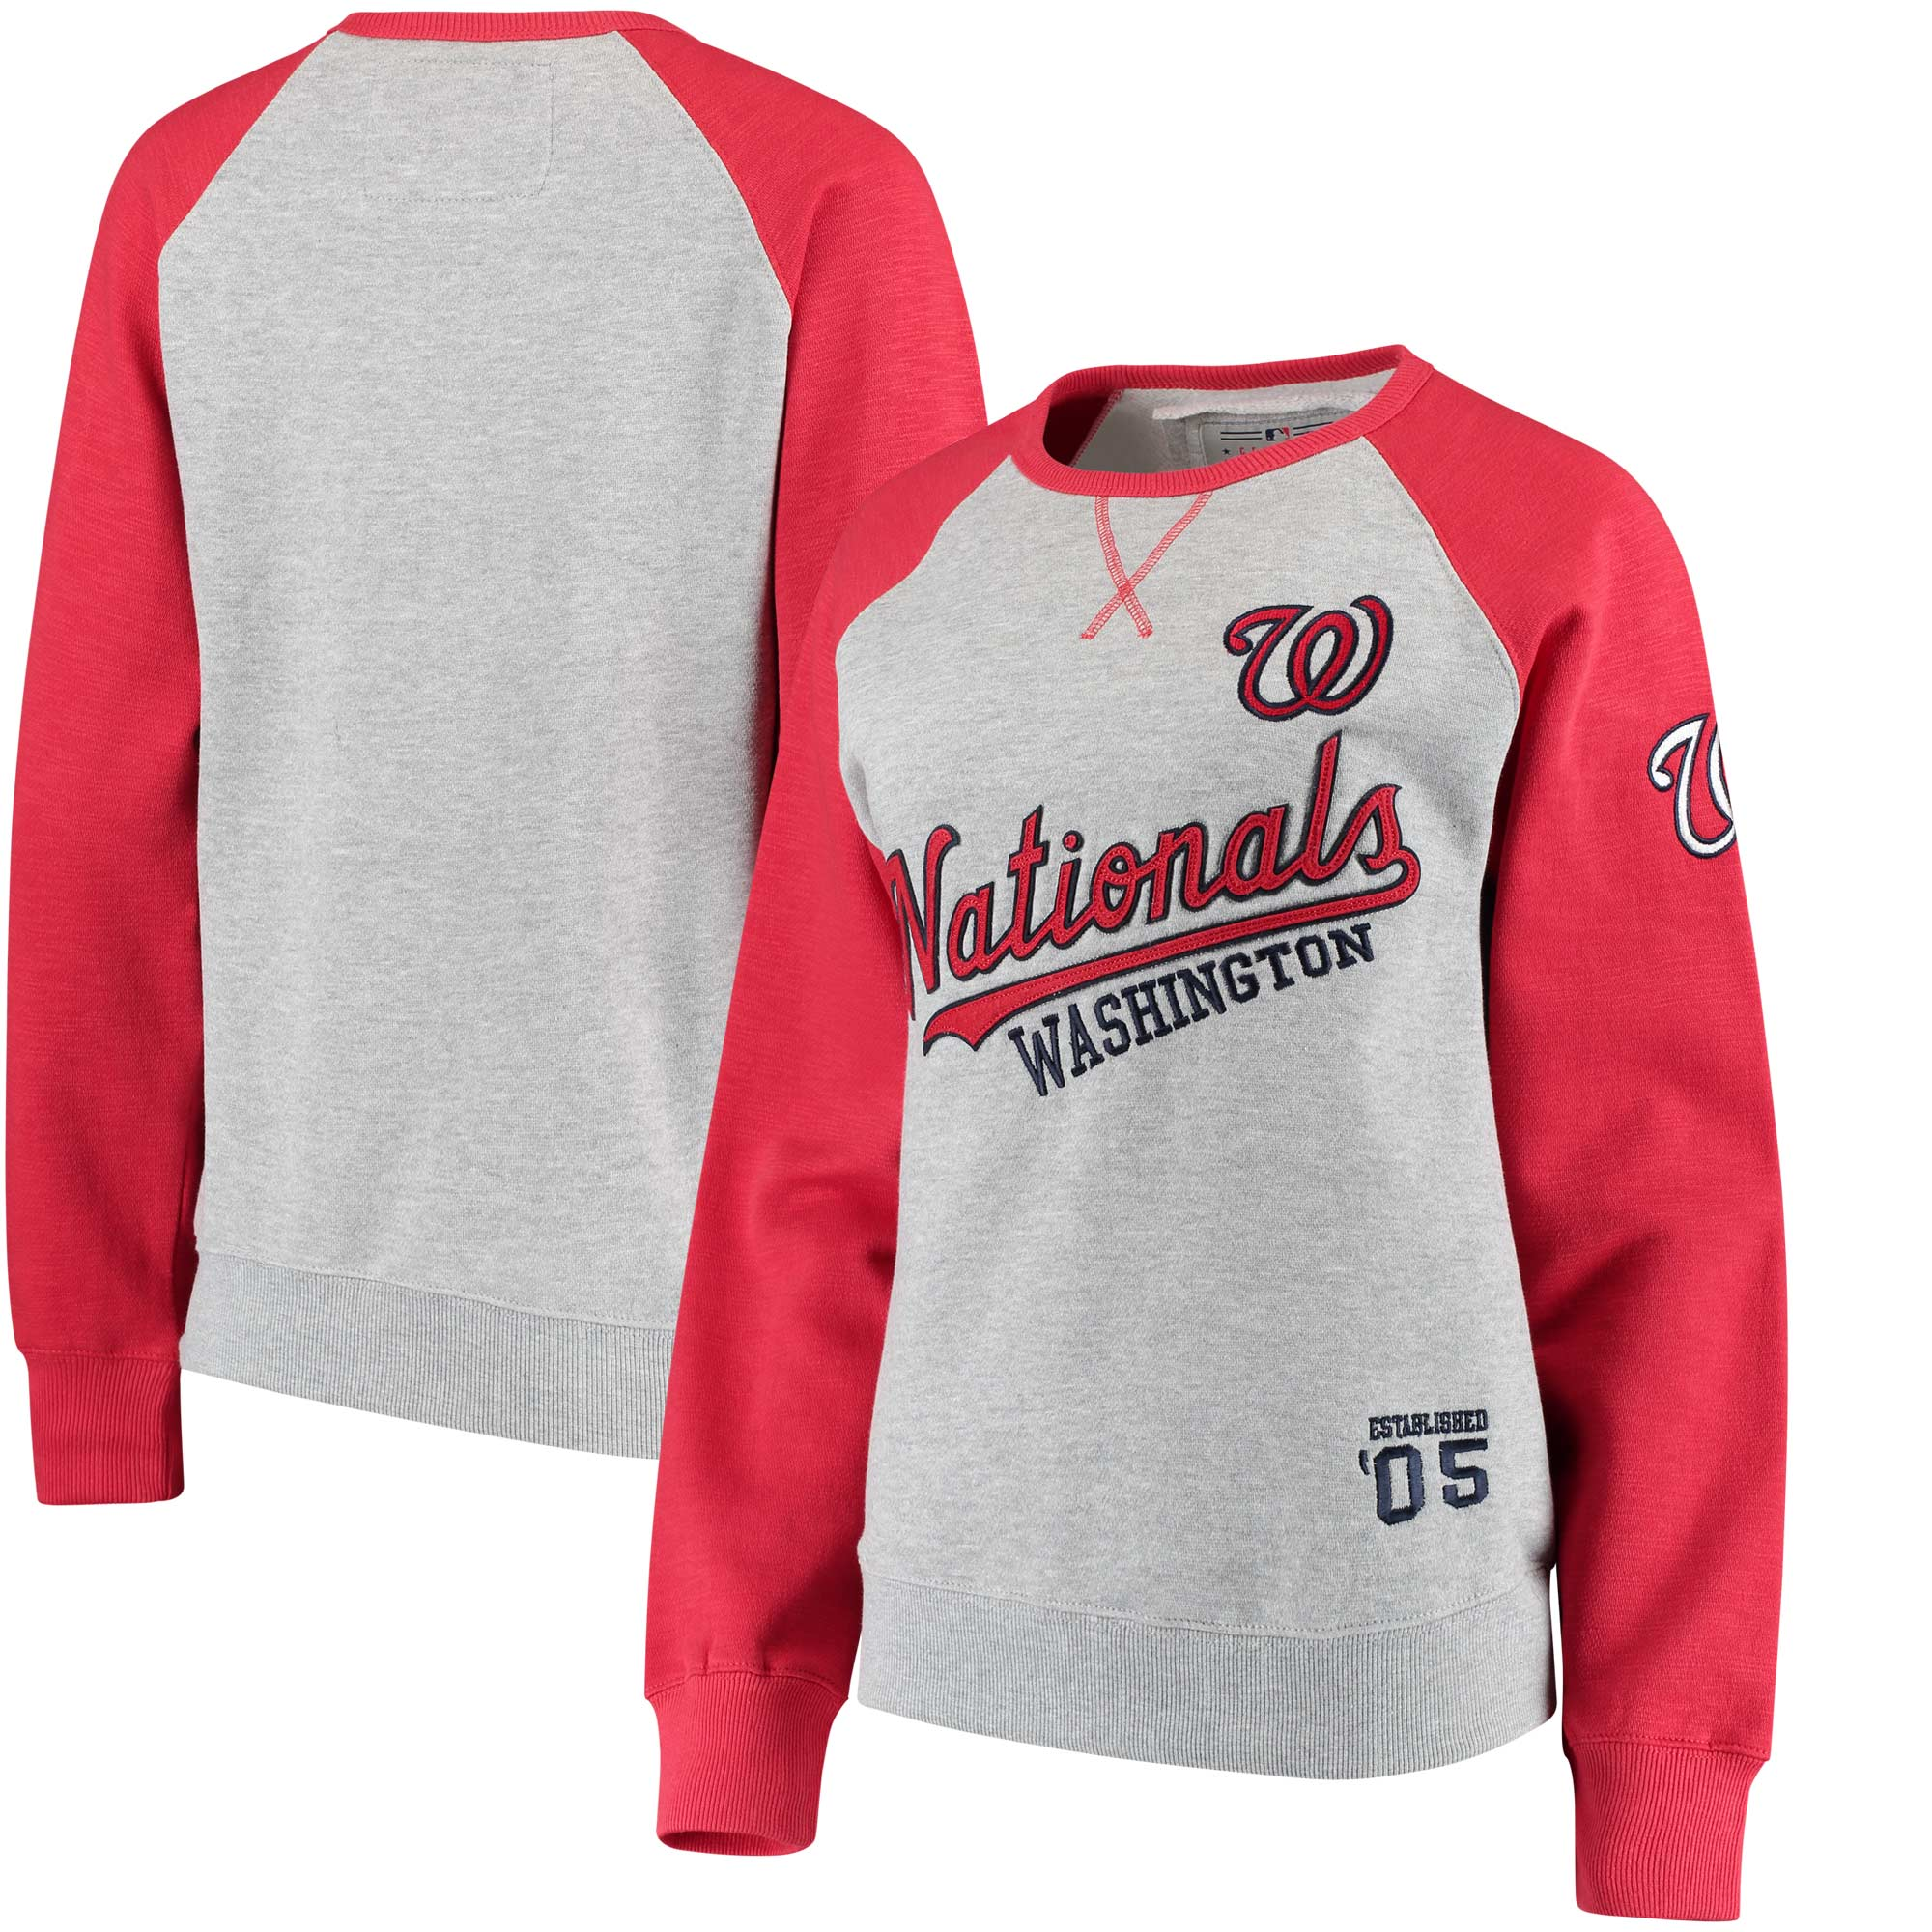 Washington Nationals Soft as a Grape Women's Biowashed Dugout Fleece Crew Neck Sweatshirt - Gray/Red